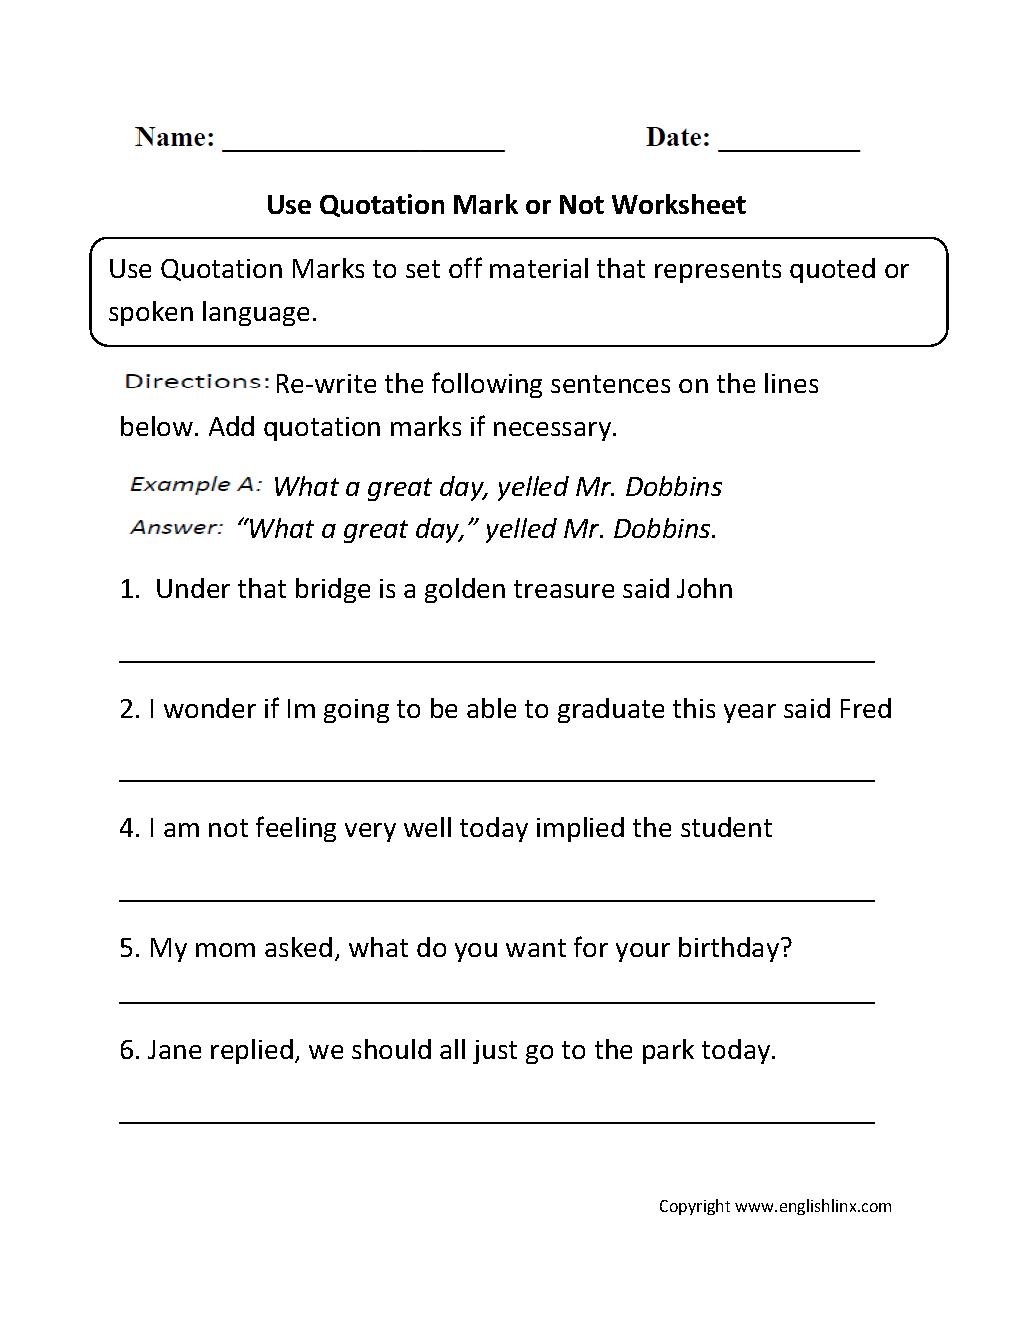 worksheet Quotations Worksheet punctuation worksheets quotation mark use or not worksheets